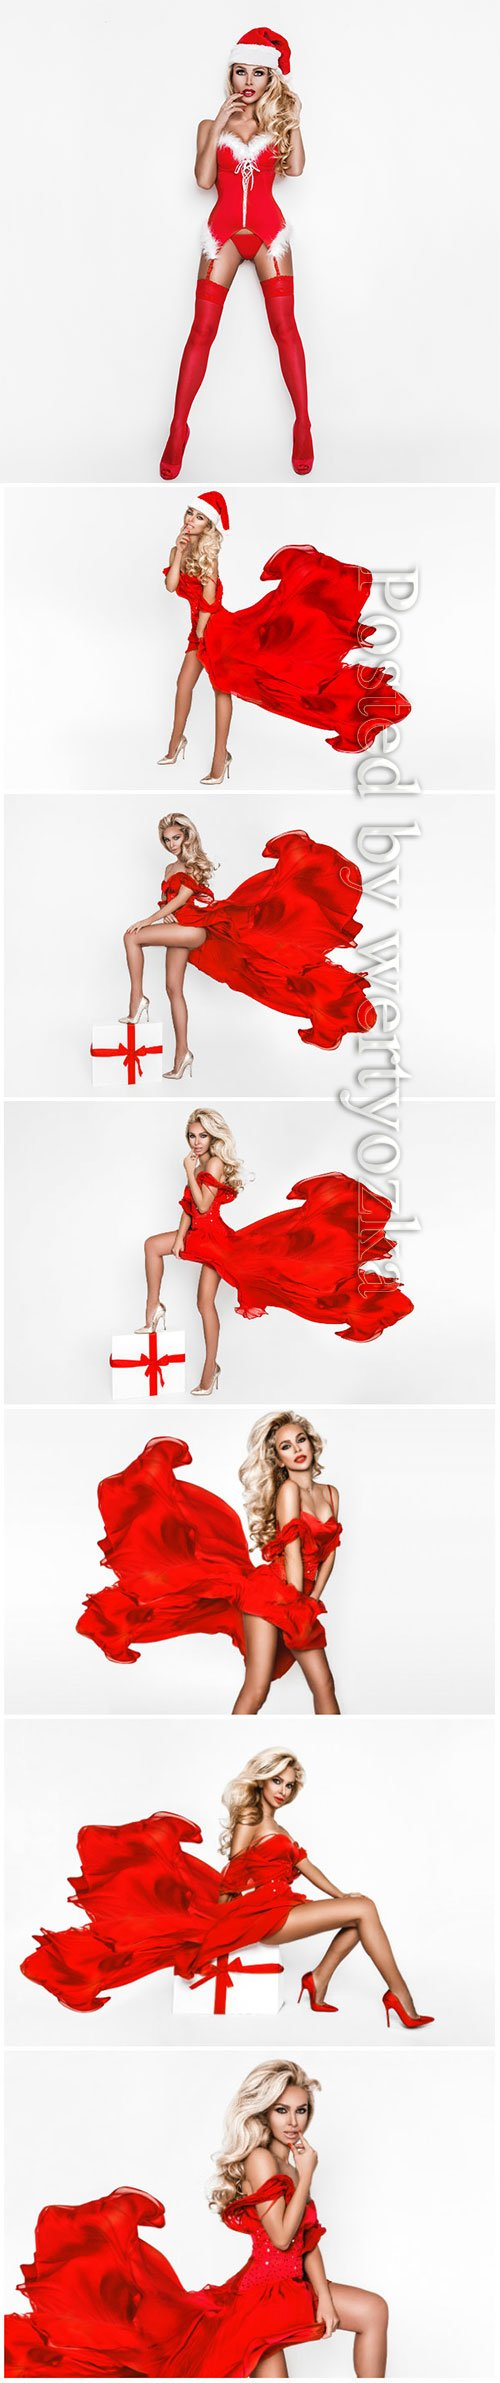 Beautiful blonde in a red dress on a white background